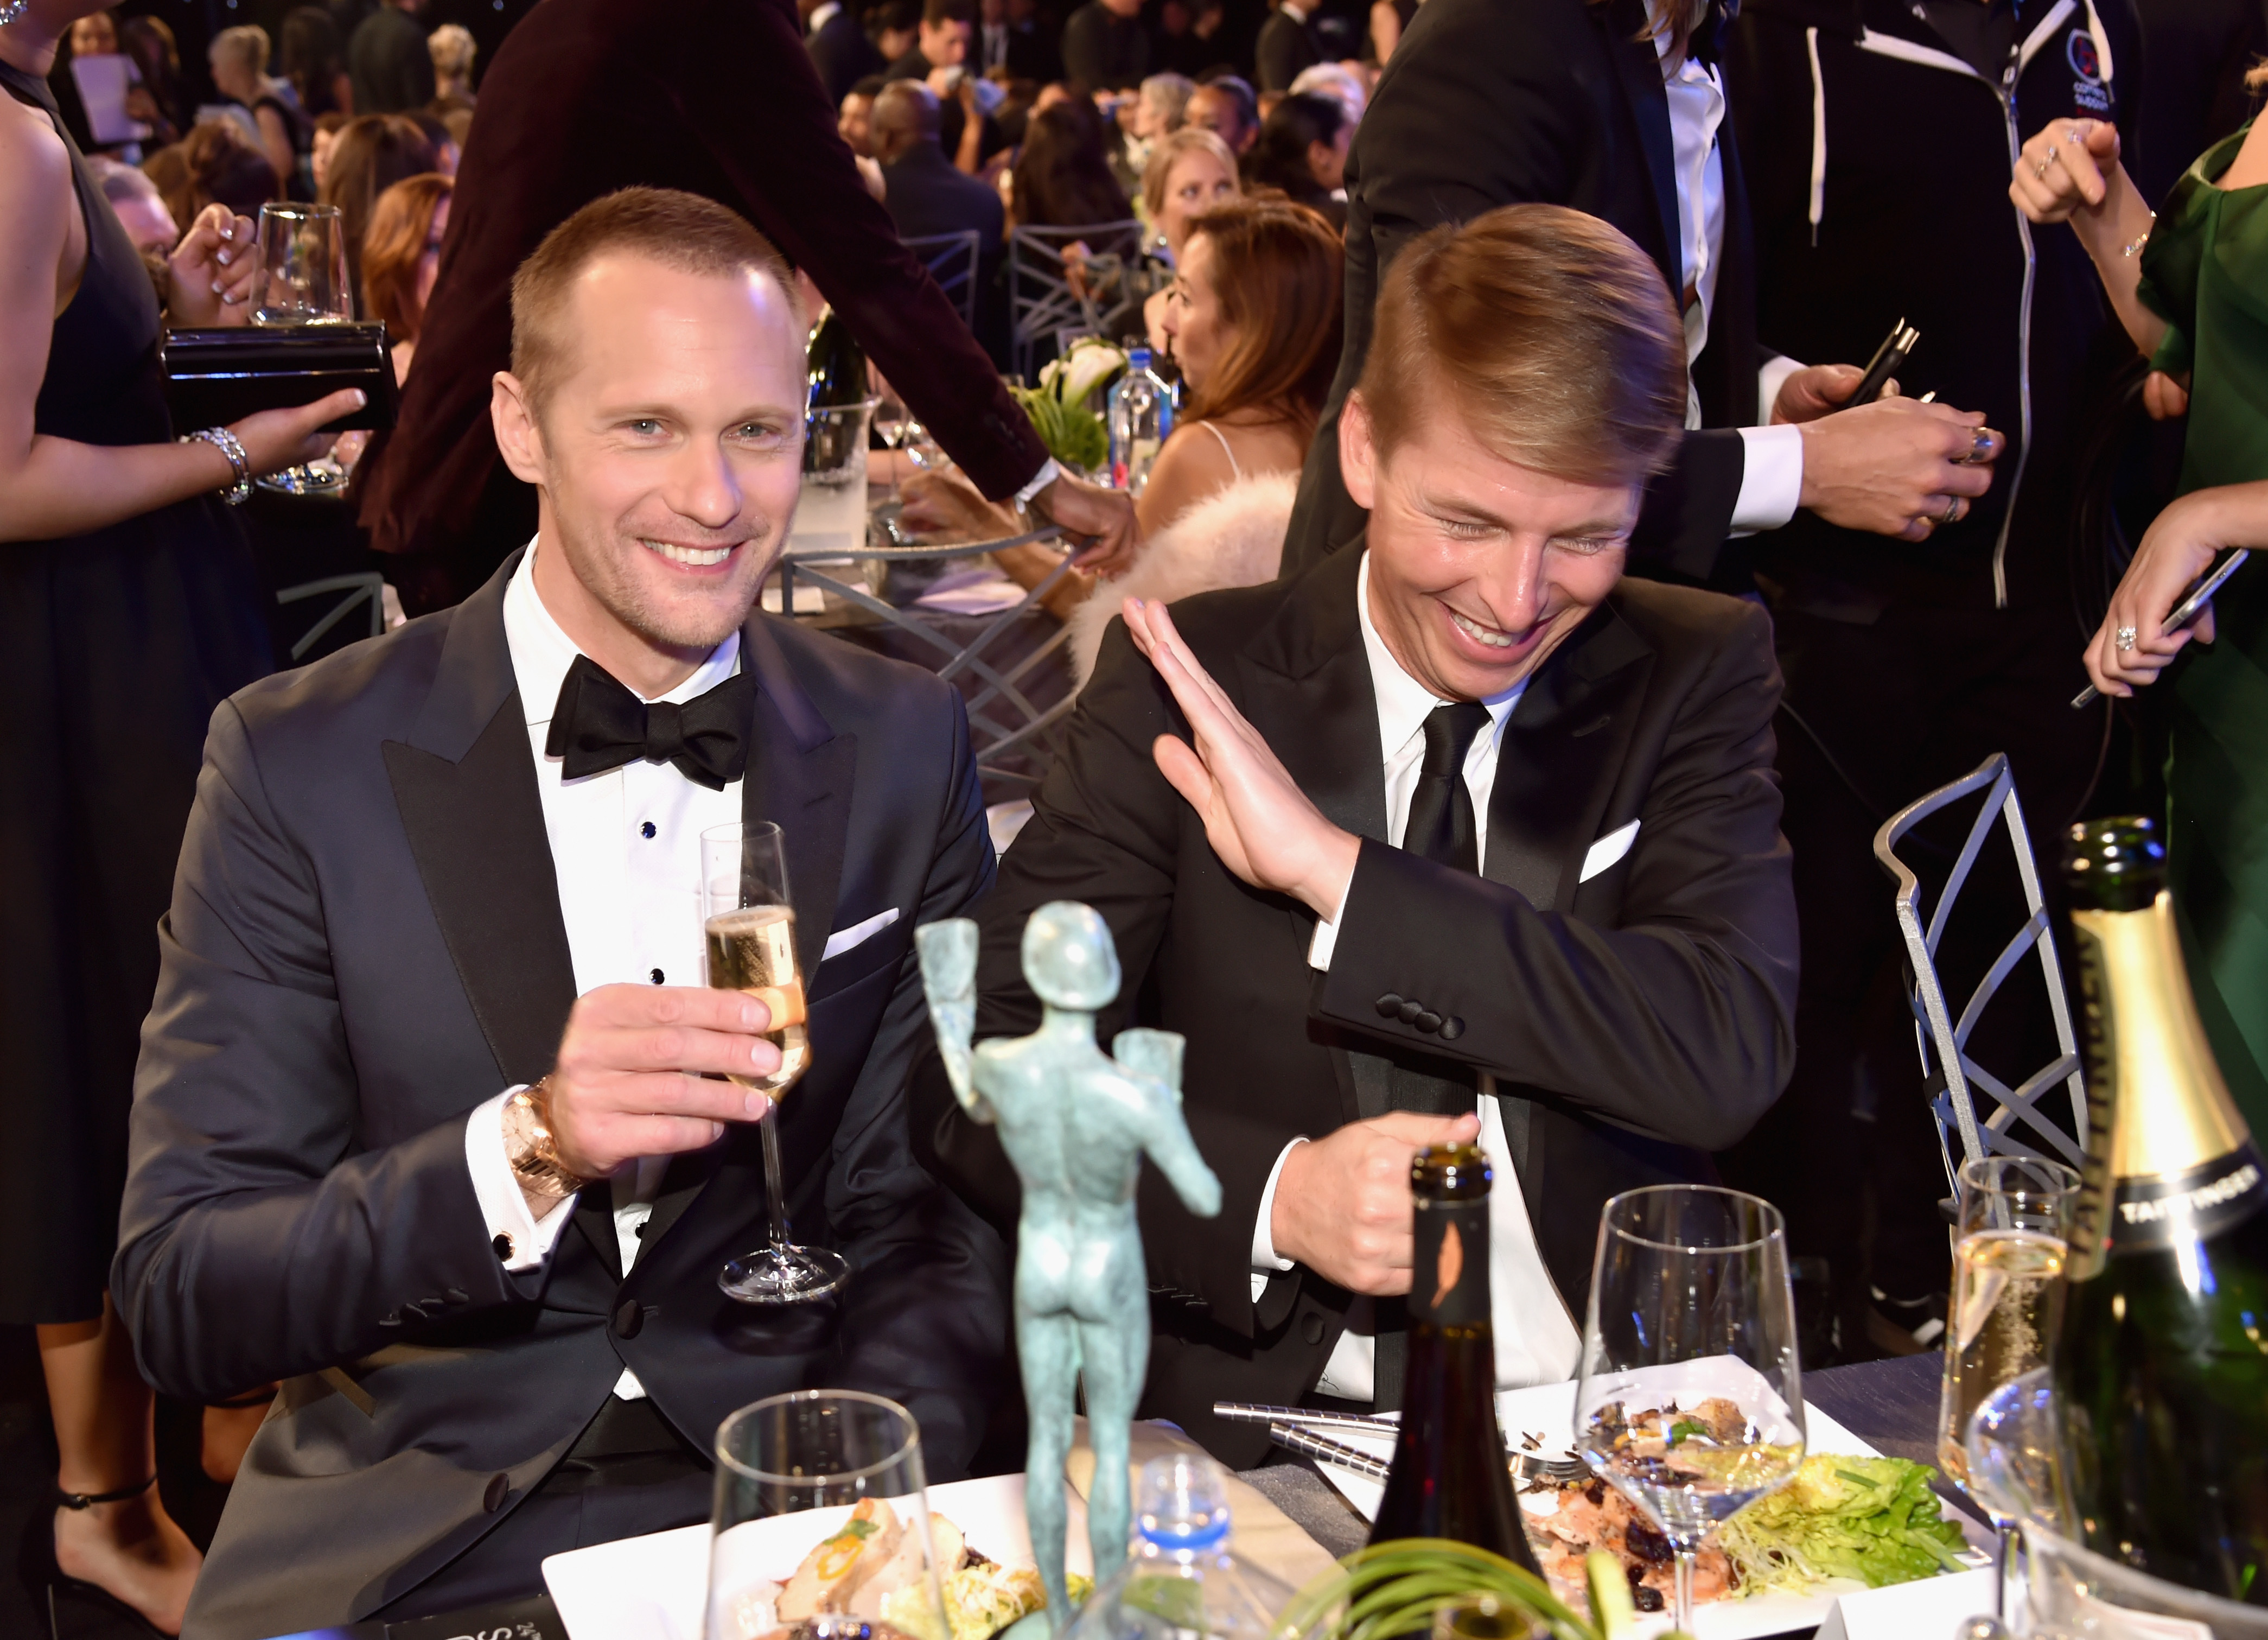 Alexander Skarsgard and Jack McBrayer attend the 24th Annual Screen Actors Guild Awards at The Shrine Auditorium in Los Angeles on Jan. 21, 2018.